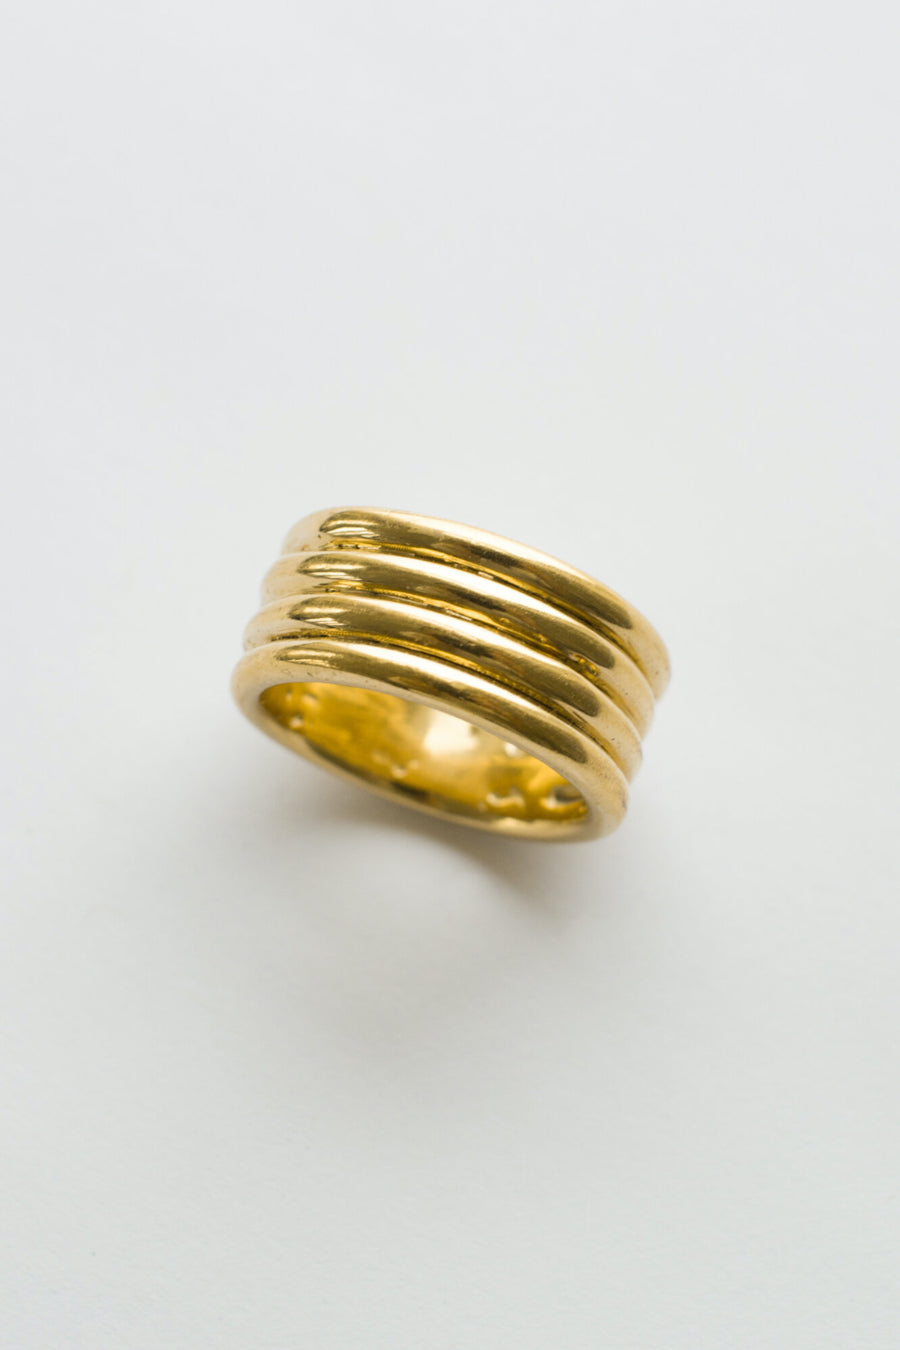 Sway Ring by Merewif